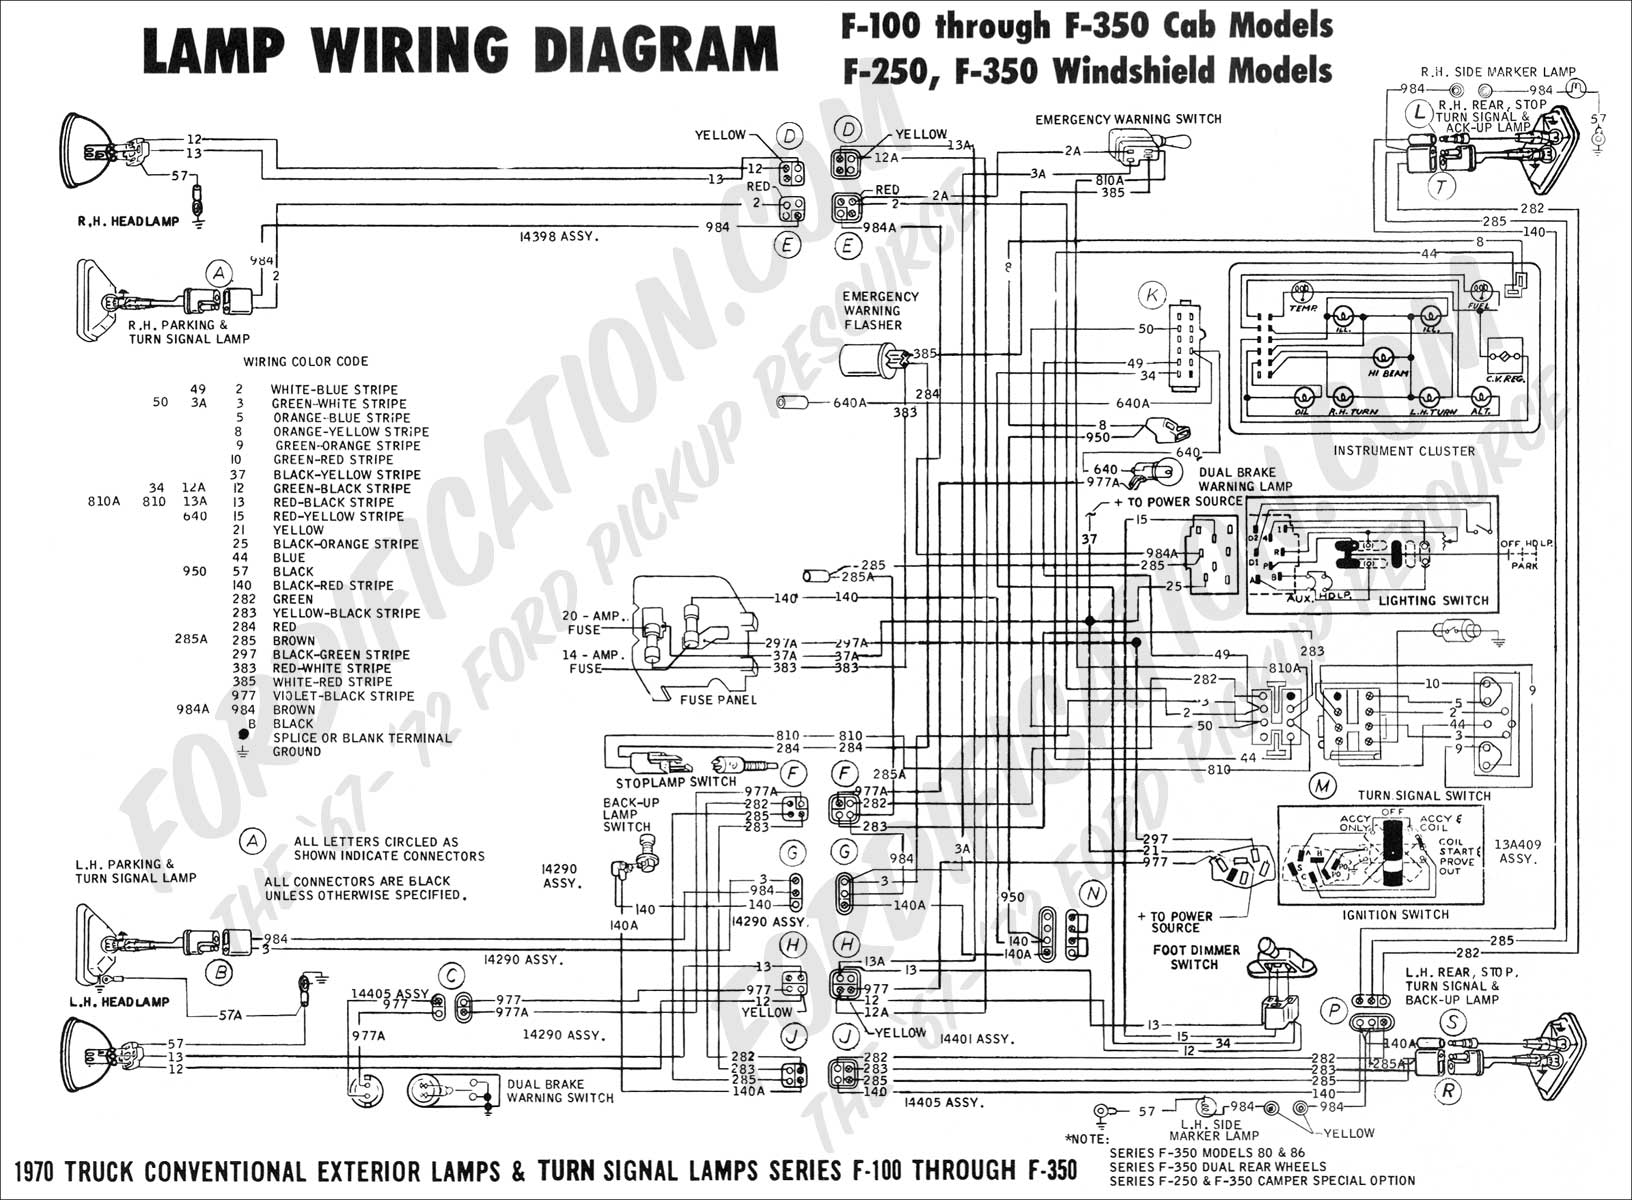 wiring diagram_70ext lights01 ford truck technical drawings and schematics section h wiring 1986 ford f250 wiring diagram at honlapkeszites.co